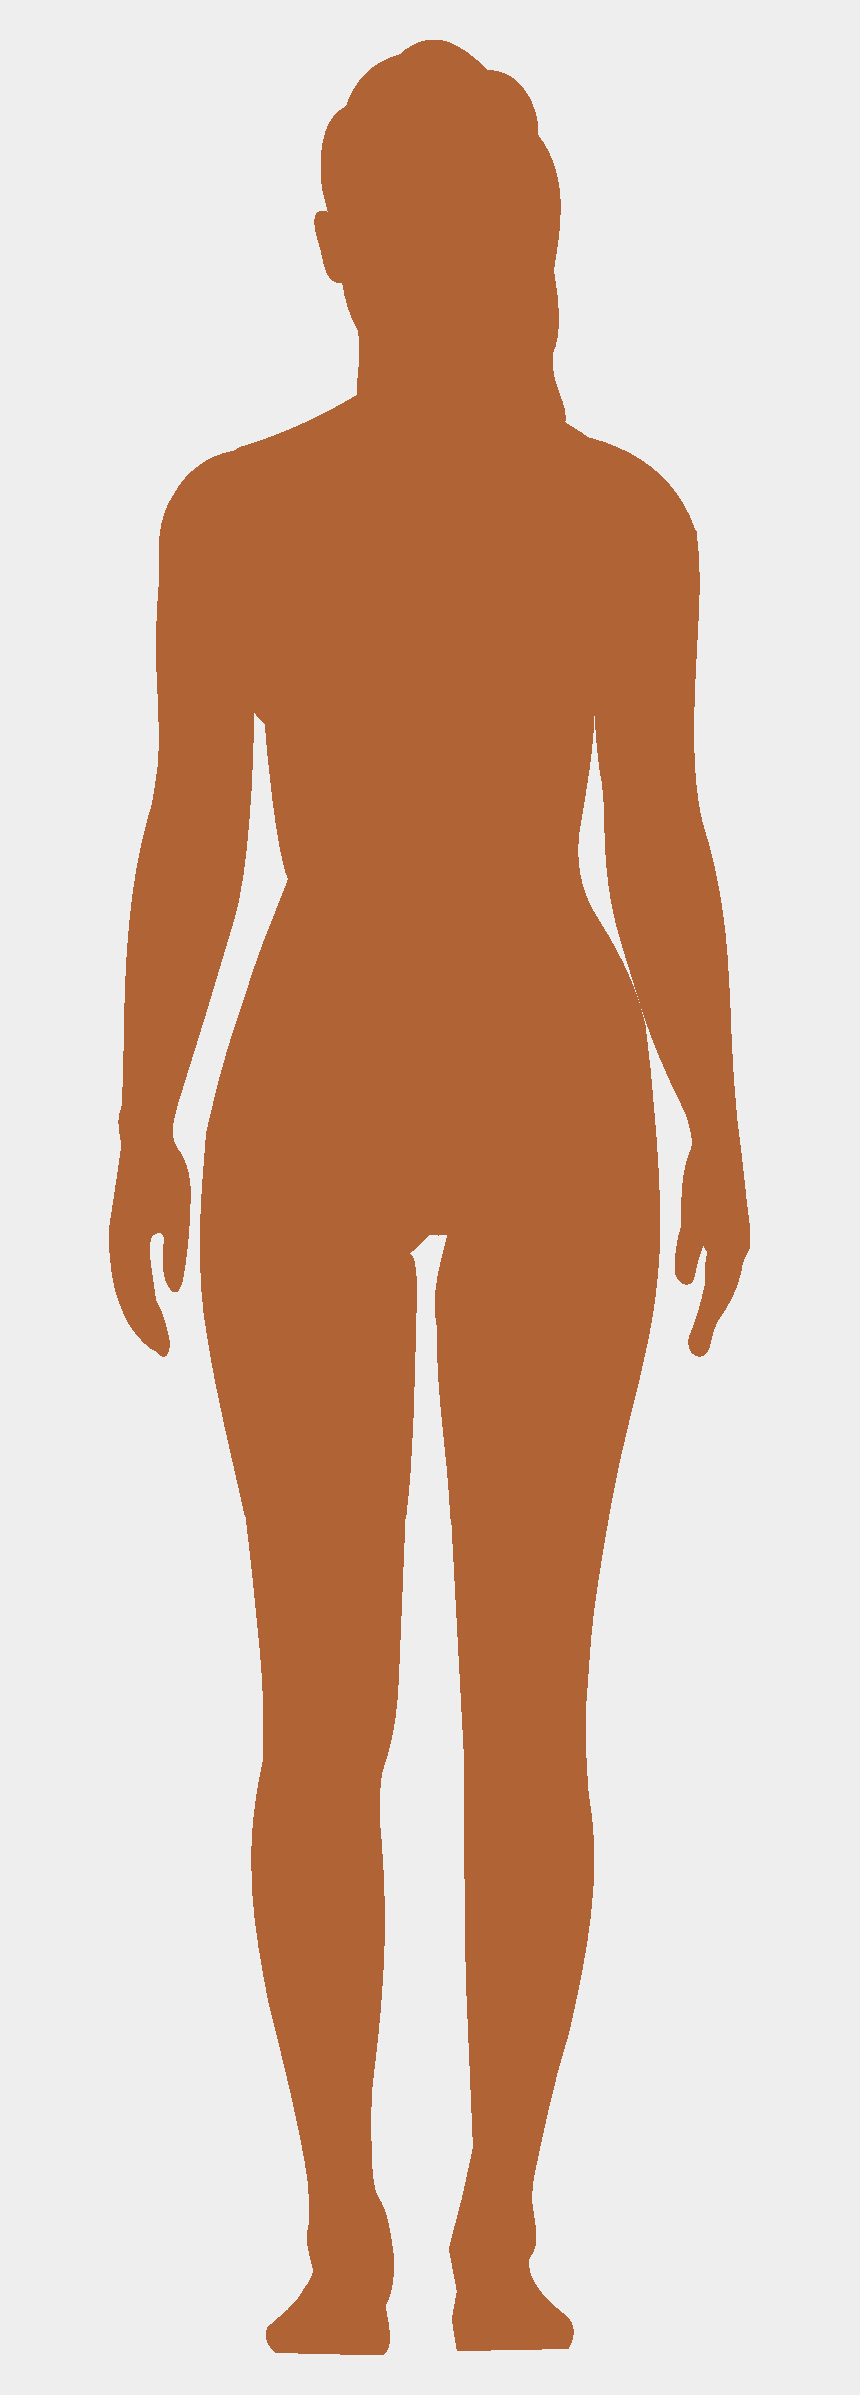 human body clipart, Cartoons - Human Body Outline Png - Female Human Body Png